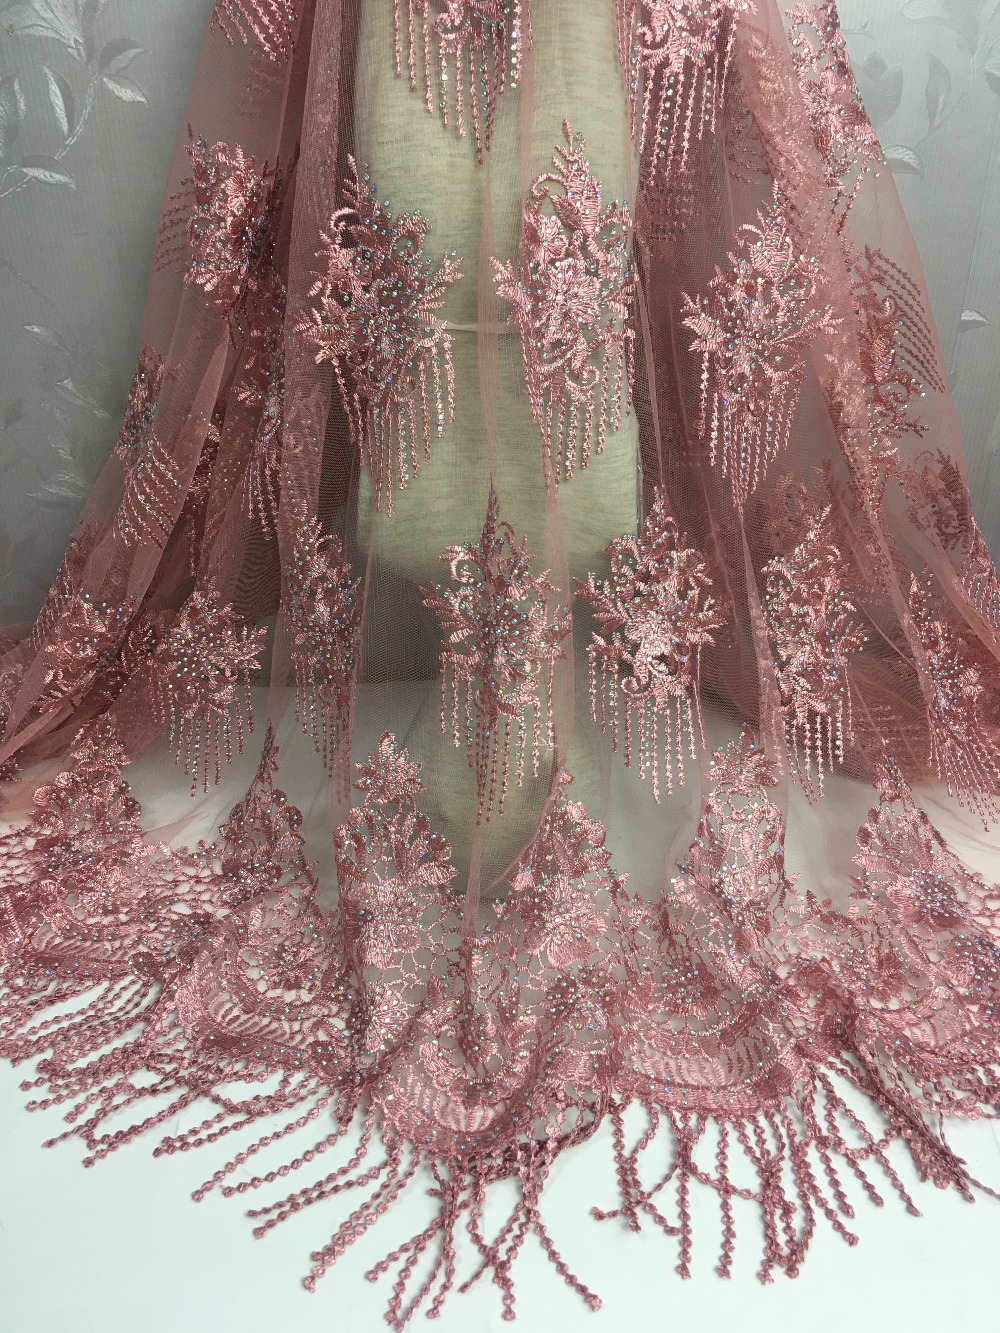 5yards lot french lace bridal embroidered tulle lace material Pink color nigerian african lace fabric for